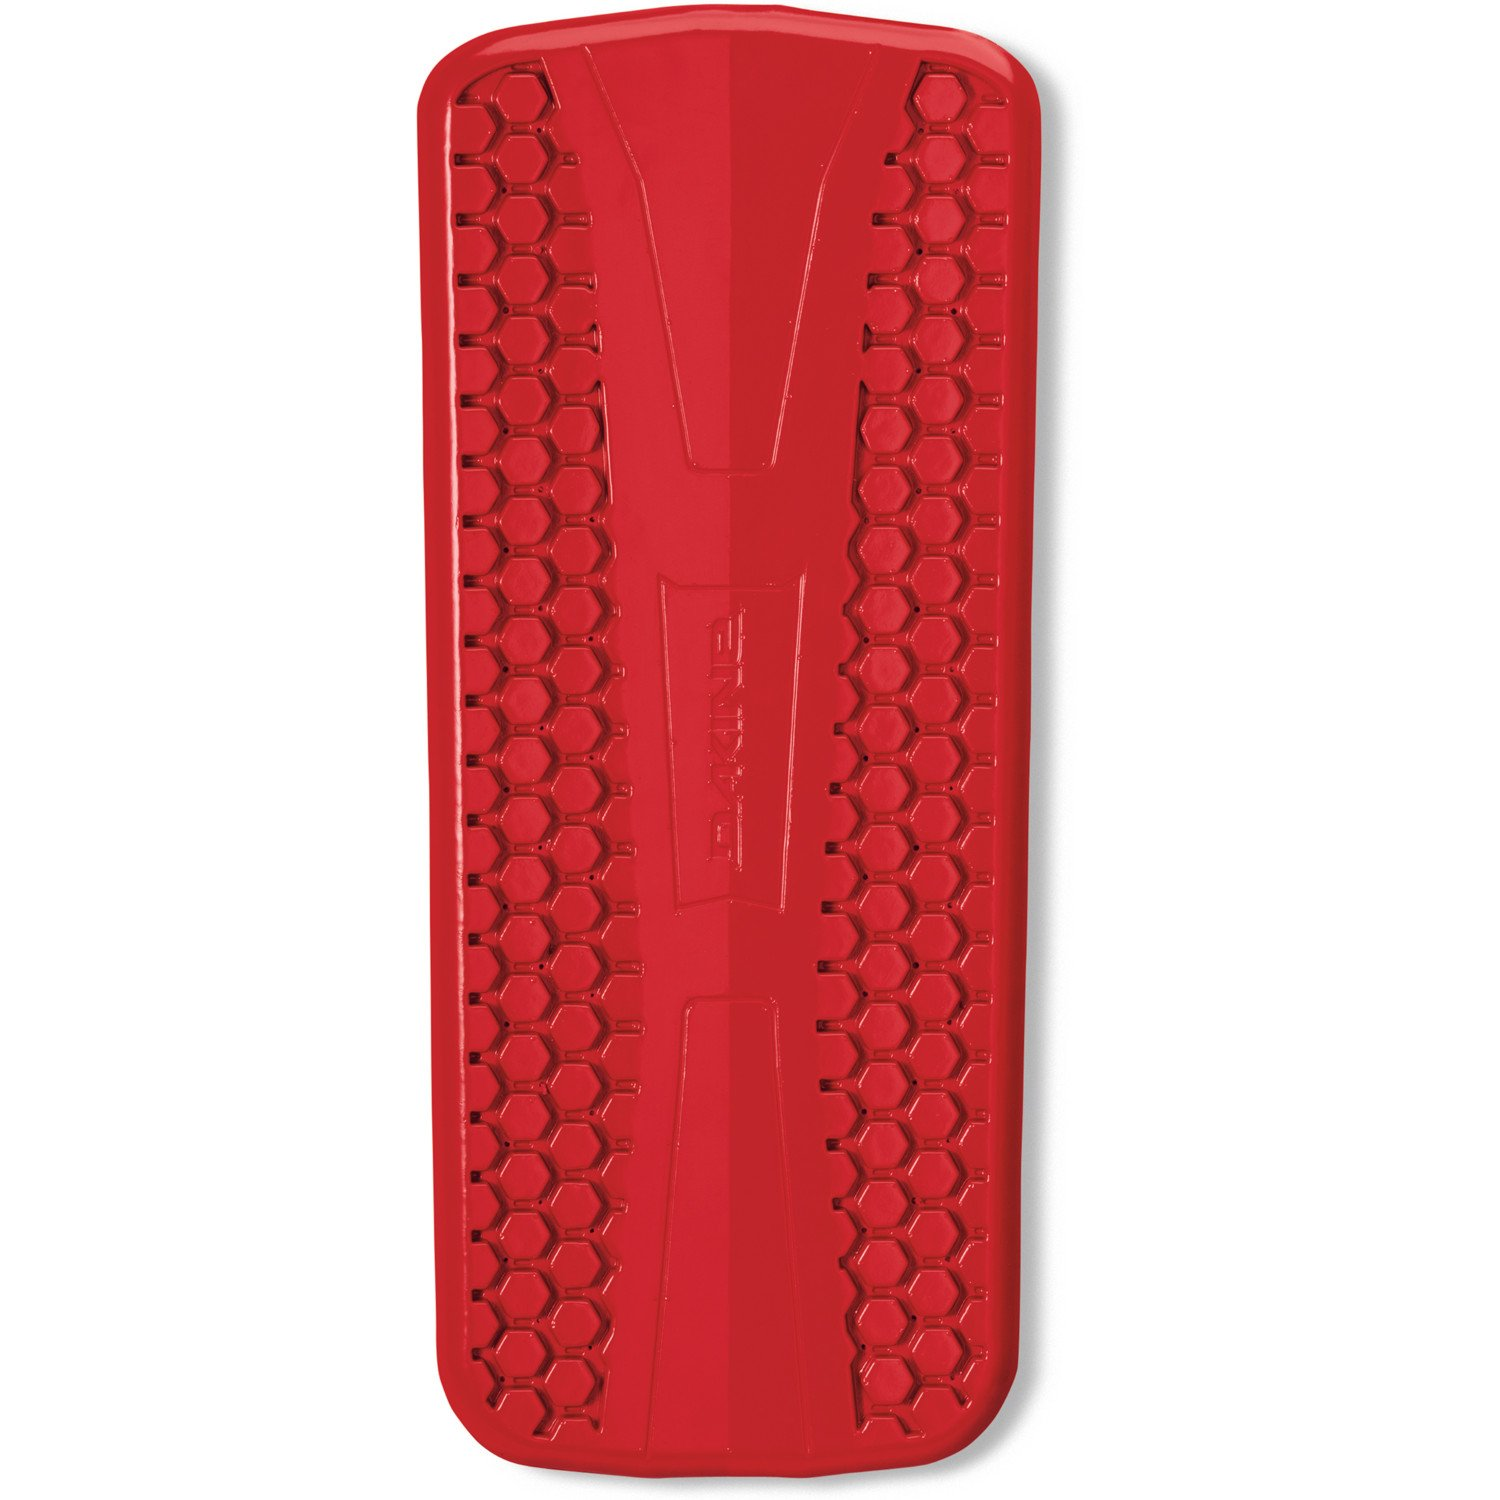 Dakine Unisex Dk Impact Spine Protector Red OS by Dakine